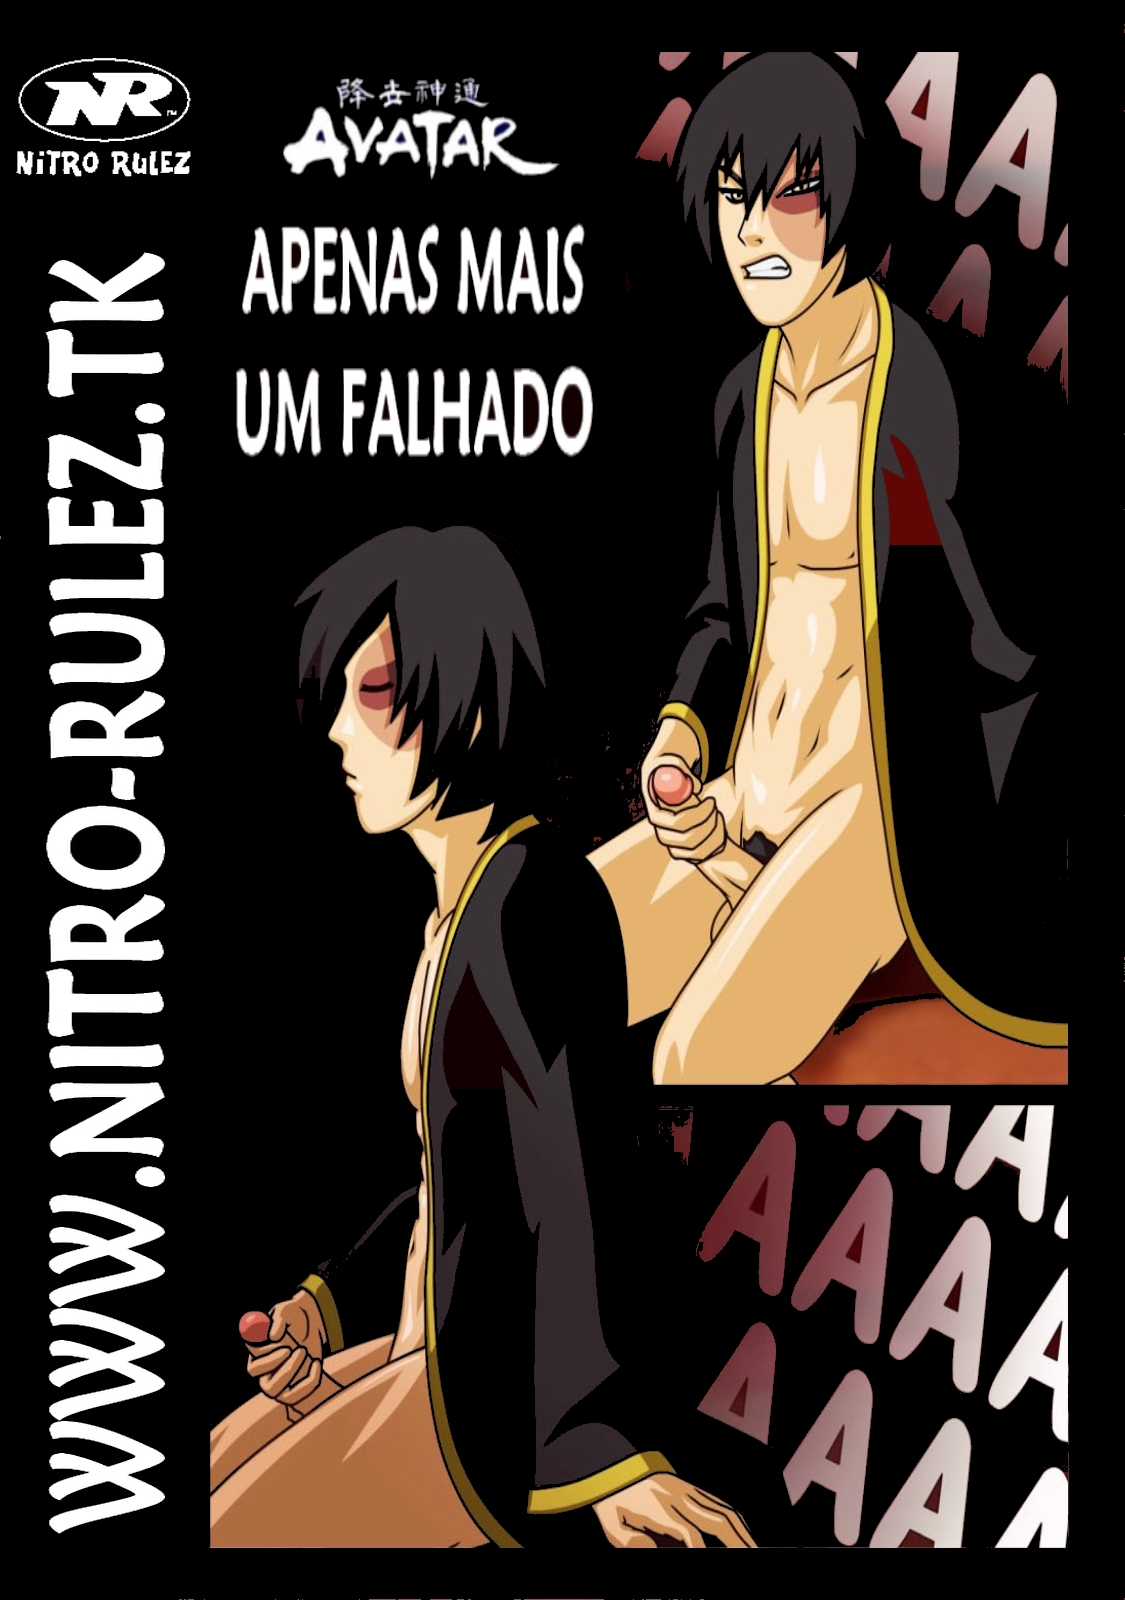 Avatar The Last Airbender Hentai Pictures just a loser [portuguese] - avatar: the last airbender